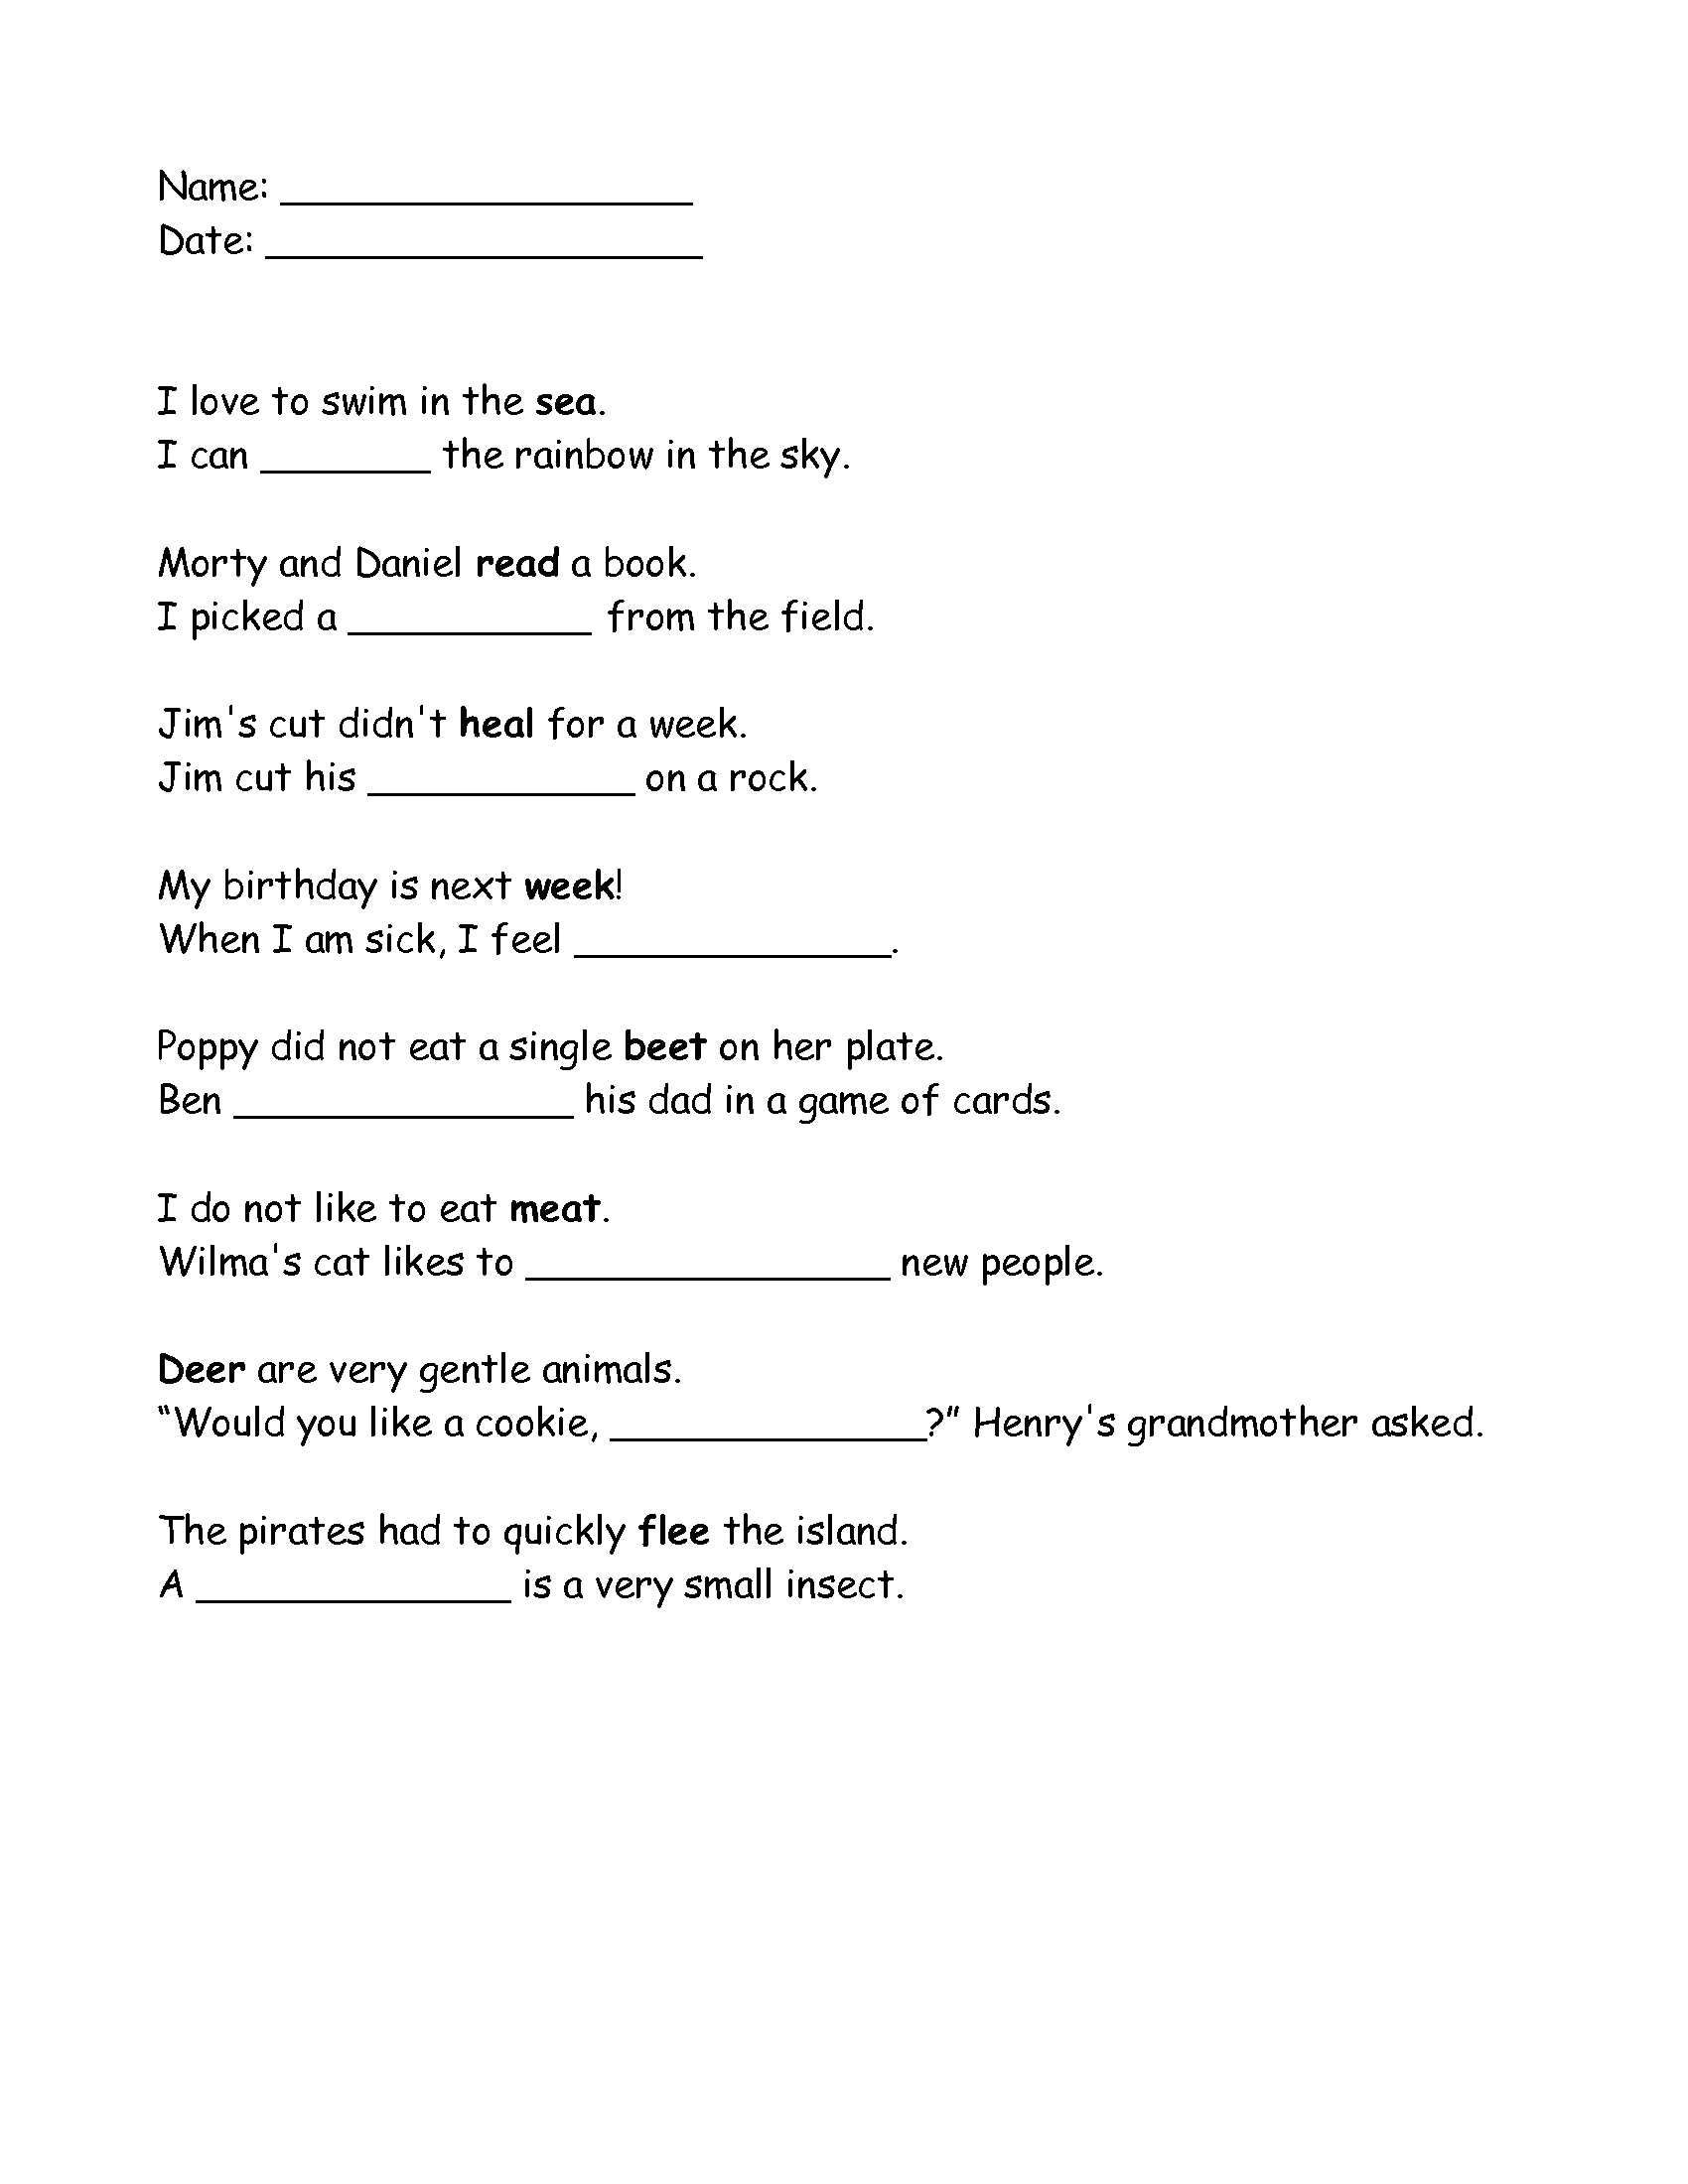 Schwa sound Worksheets Grade 2 Grade 2 Homophones Ee and Ea Worksheet that I Made Click